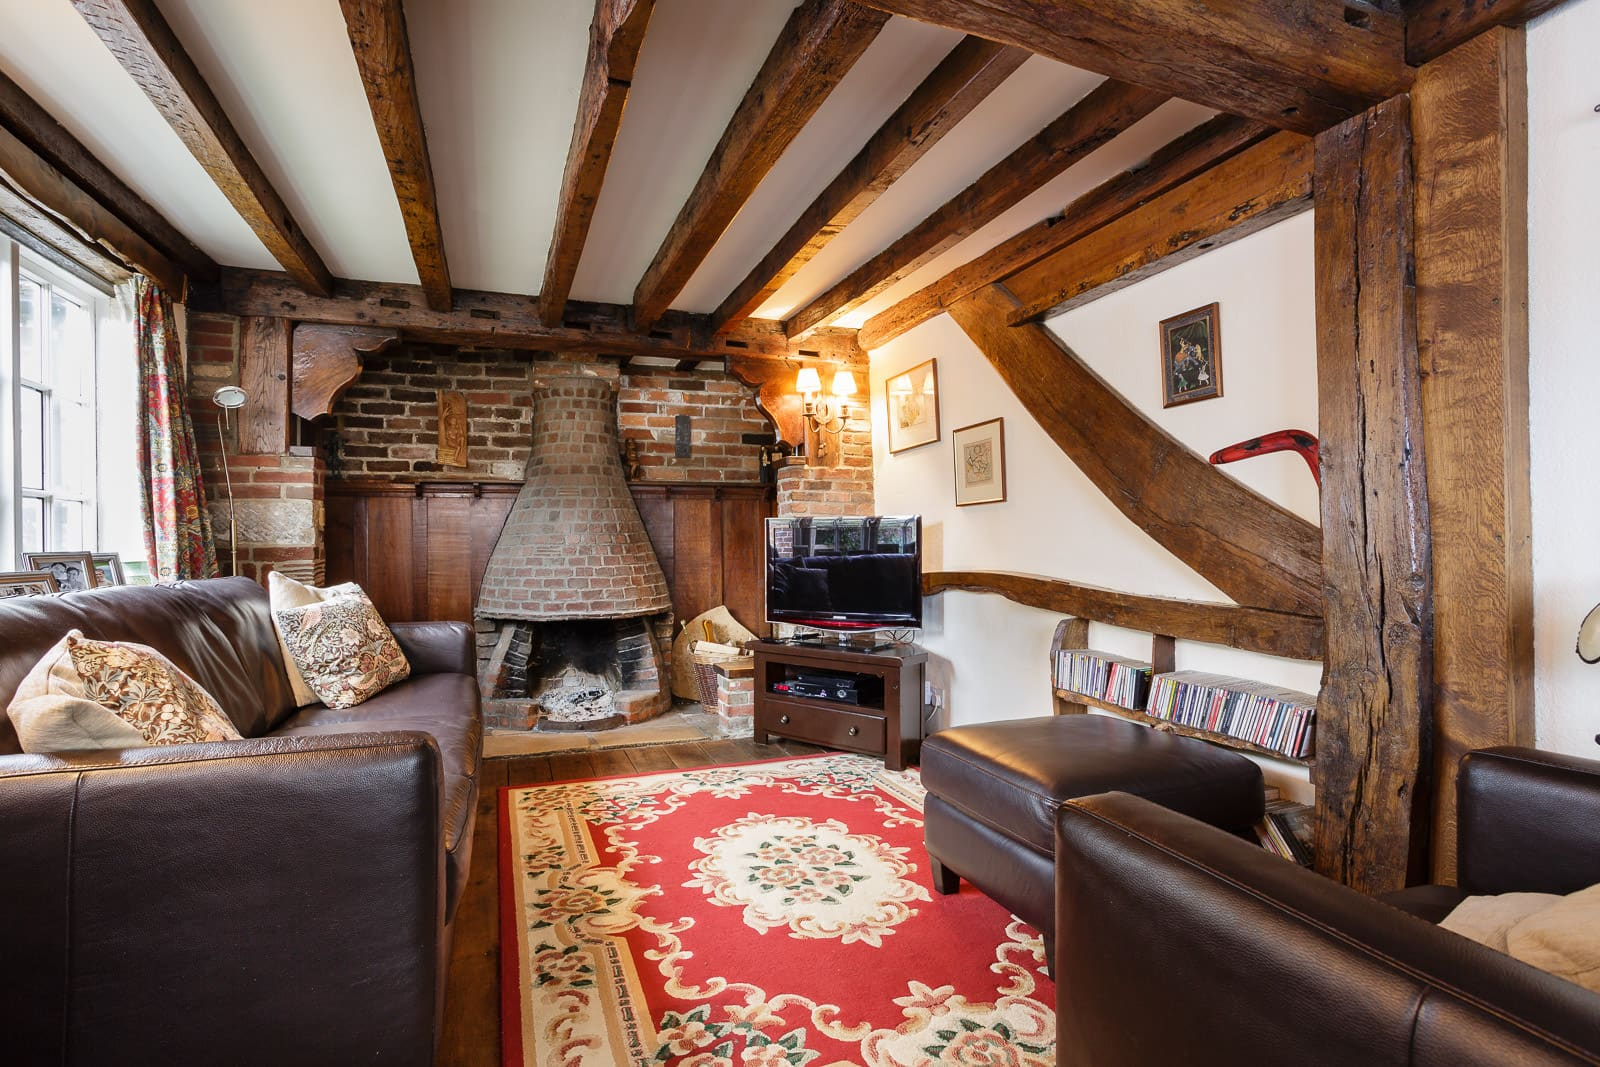 Country cottage lounge with dark oak beams and conical fireplace with dark leather furniture to match.